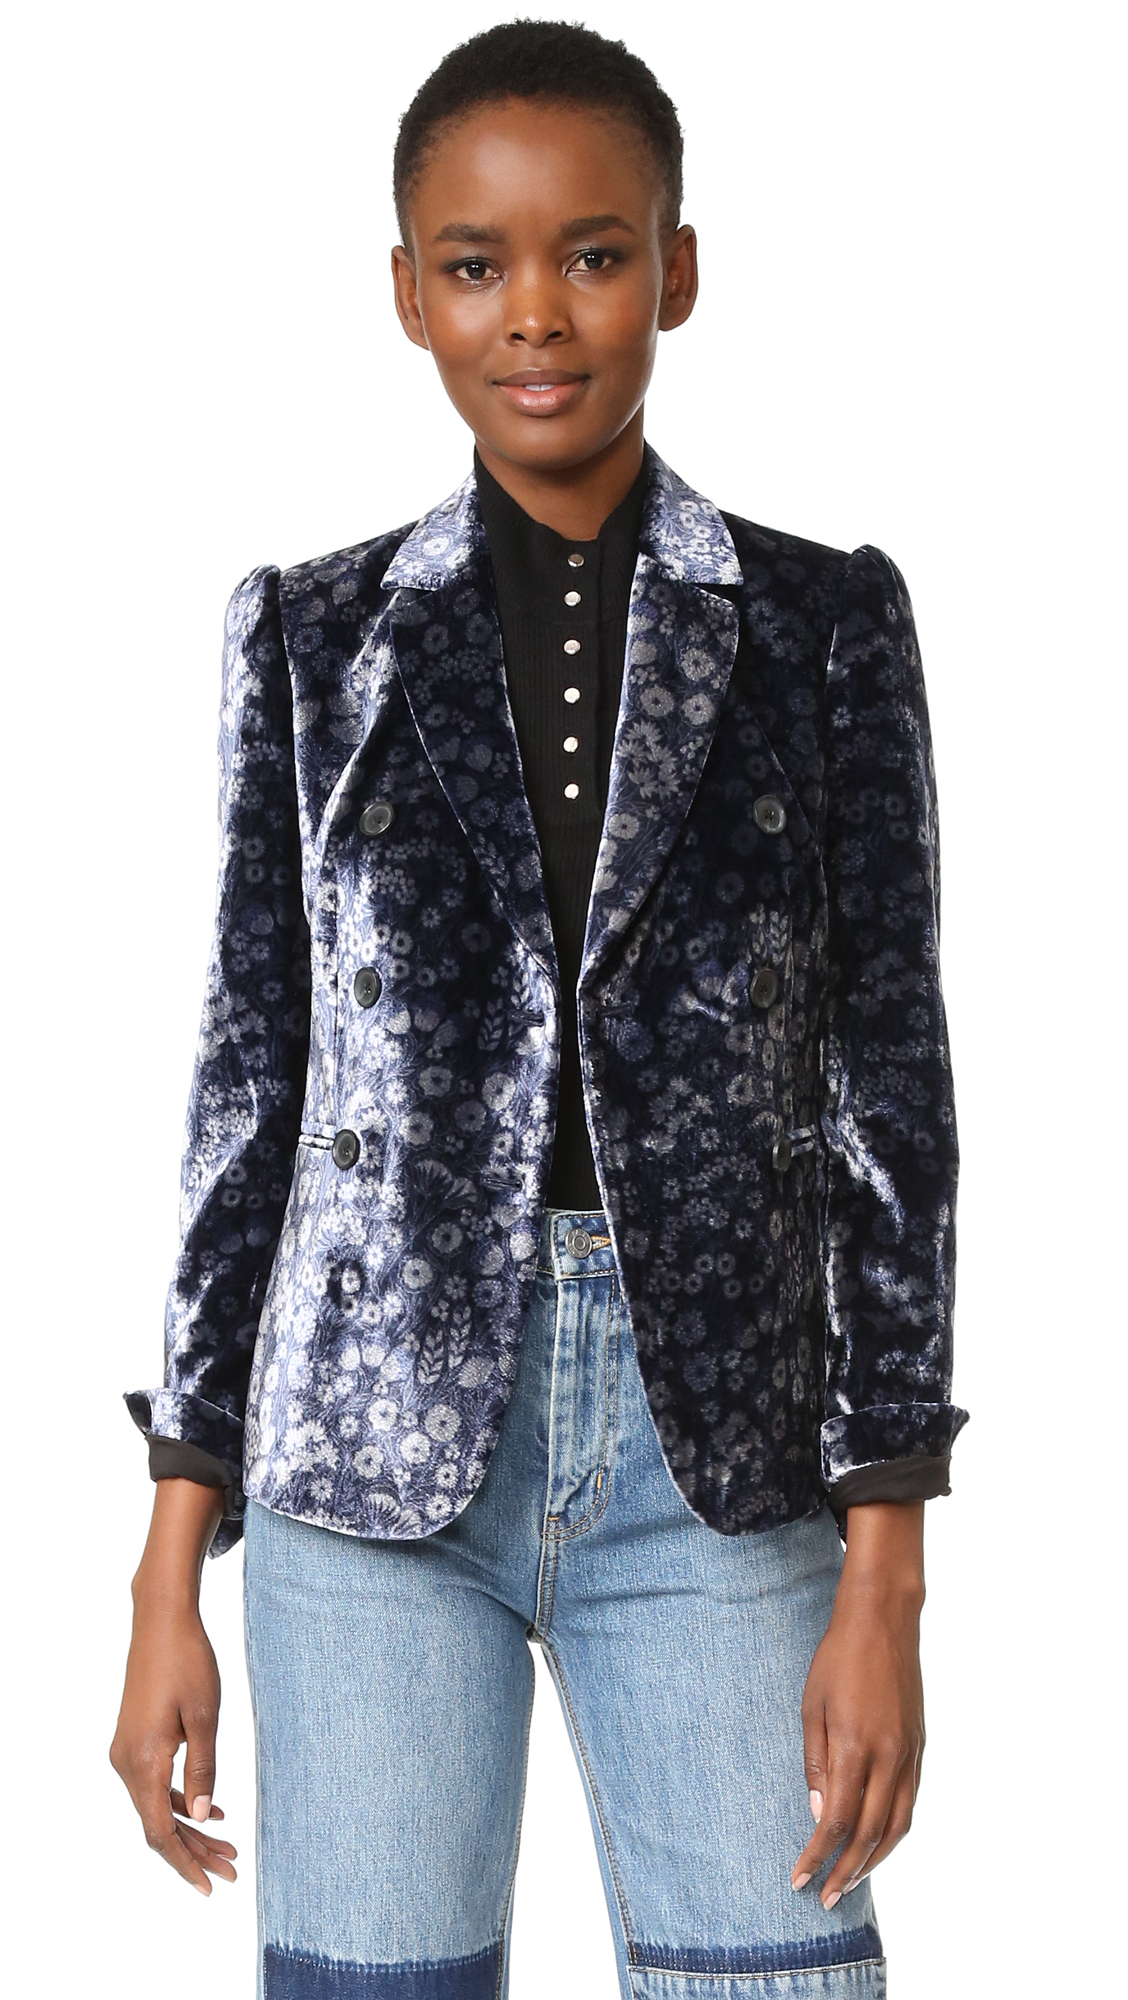 This velvet Rebecca Taylor double breasted blazer is detailed with an allover floral print. Notched lapels and button placket. Welt front pockets. Padded shoulders. Button cuffs. Lined. Fabric: Crushed velvet. Shell: 82% rayon/18% silk. Trim: 100% polyester. Lining: 57%